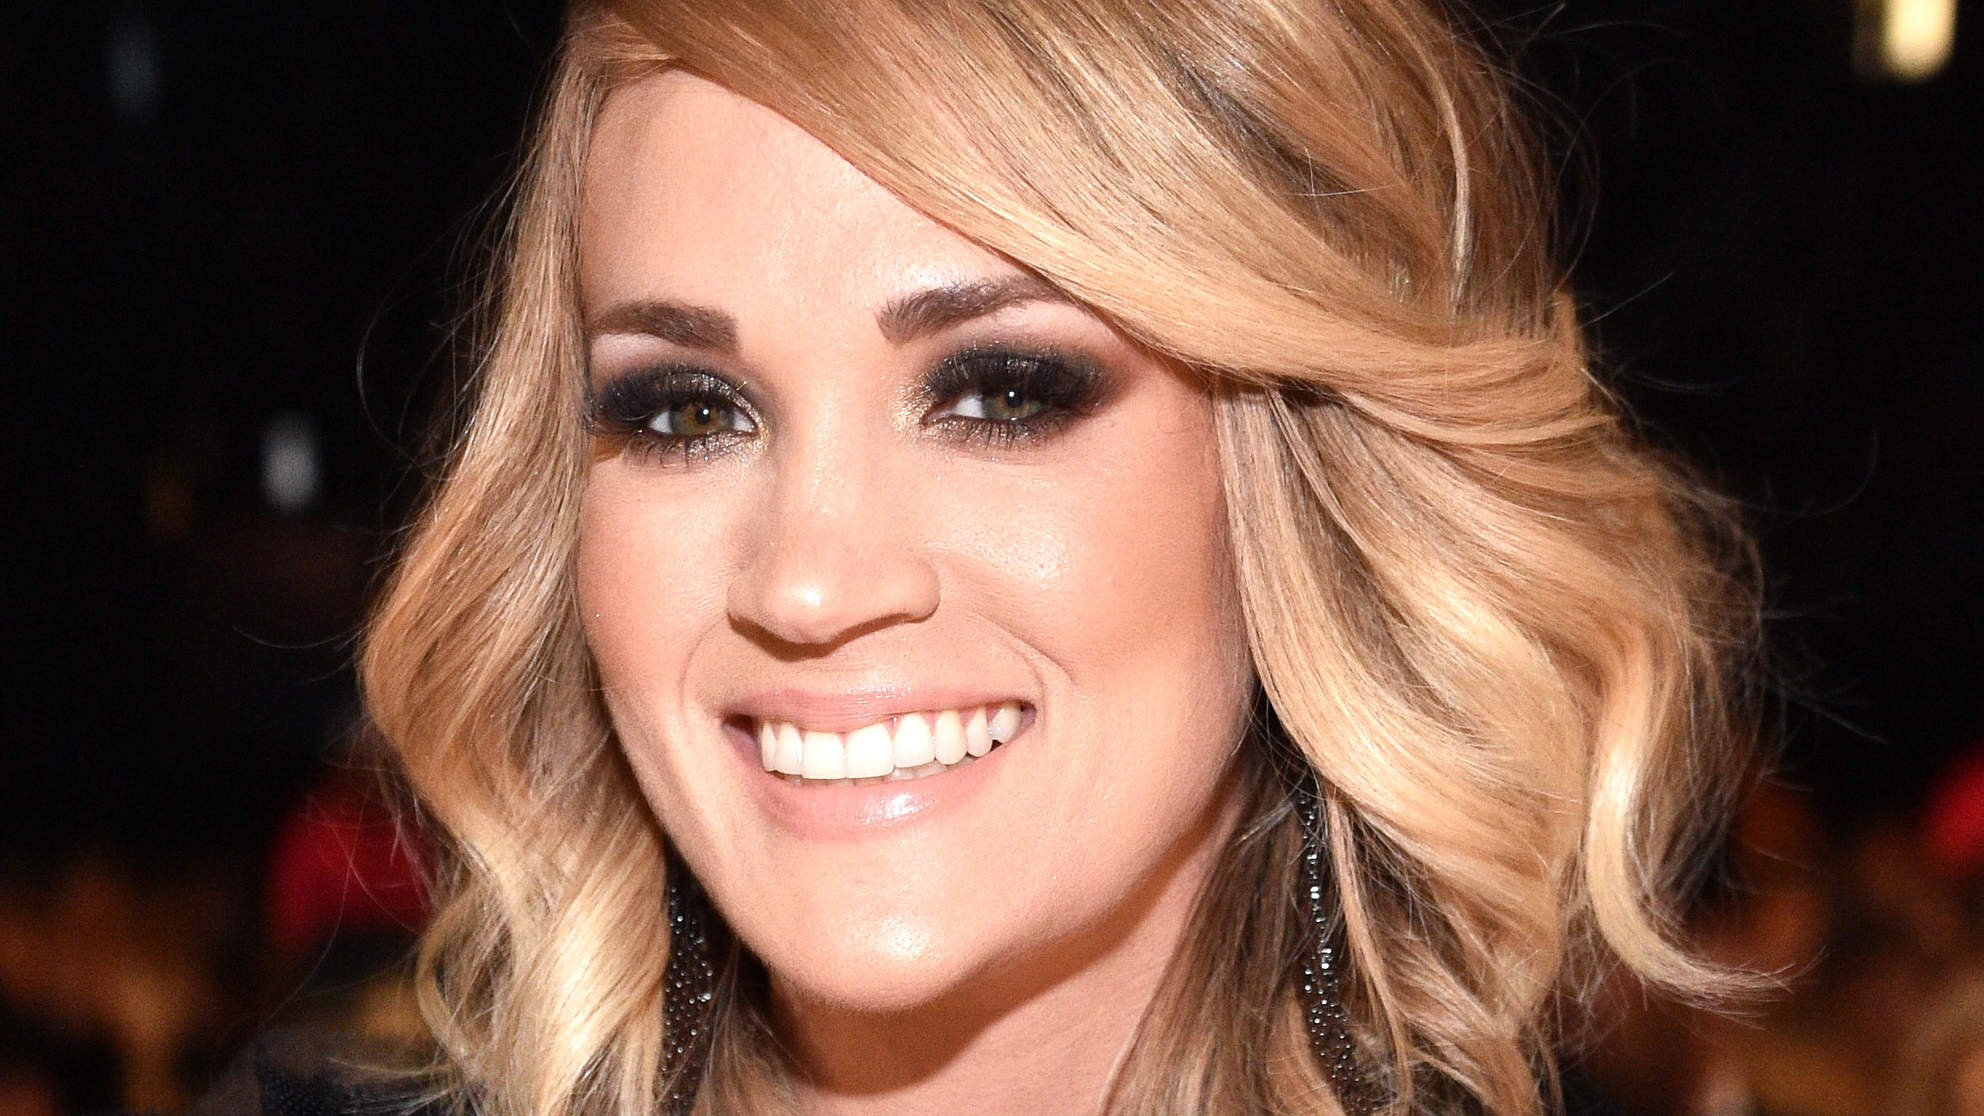 Carrie Underwood on Why She'll Never Wear an 'Itsy-Bitsy' Triangle Bikini—and What She Does Instead